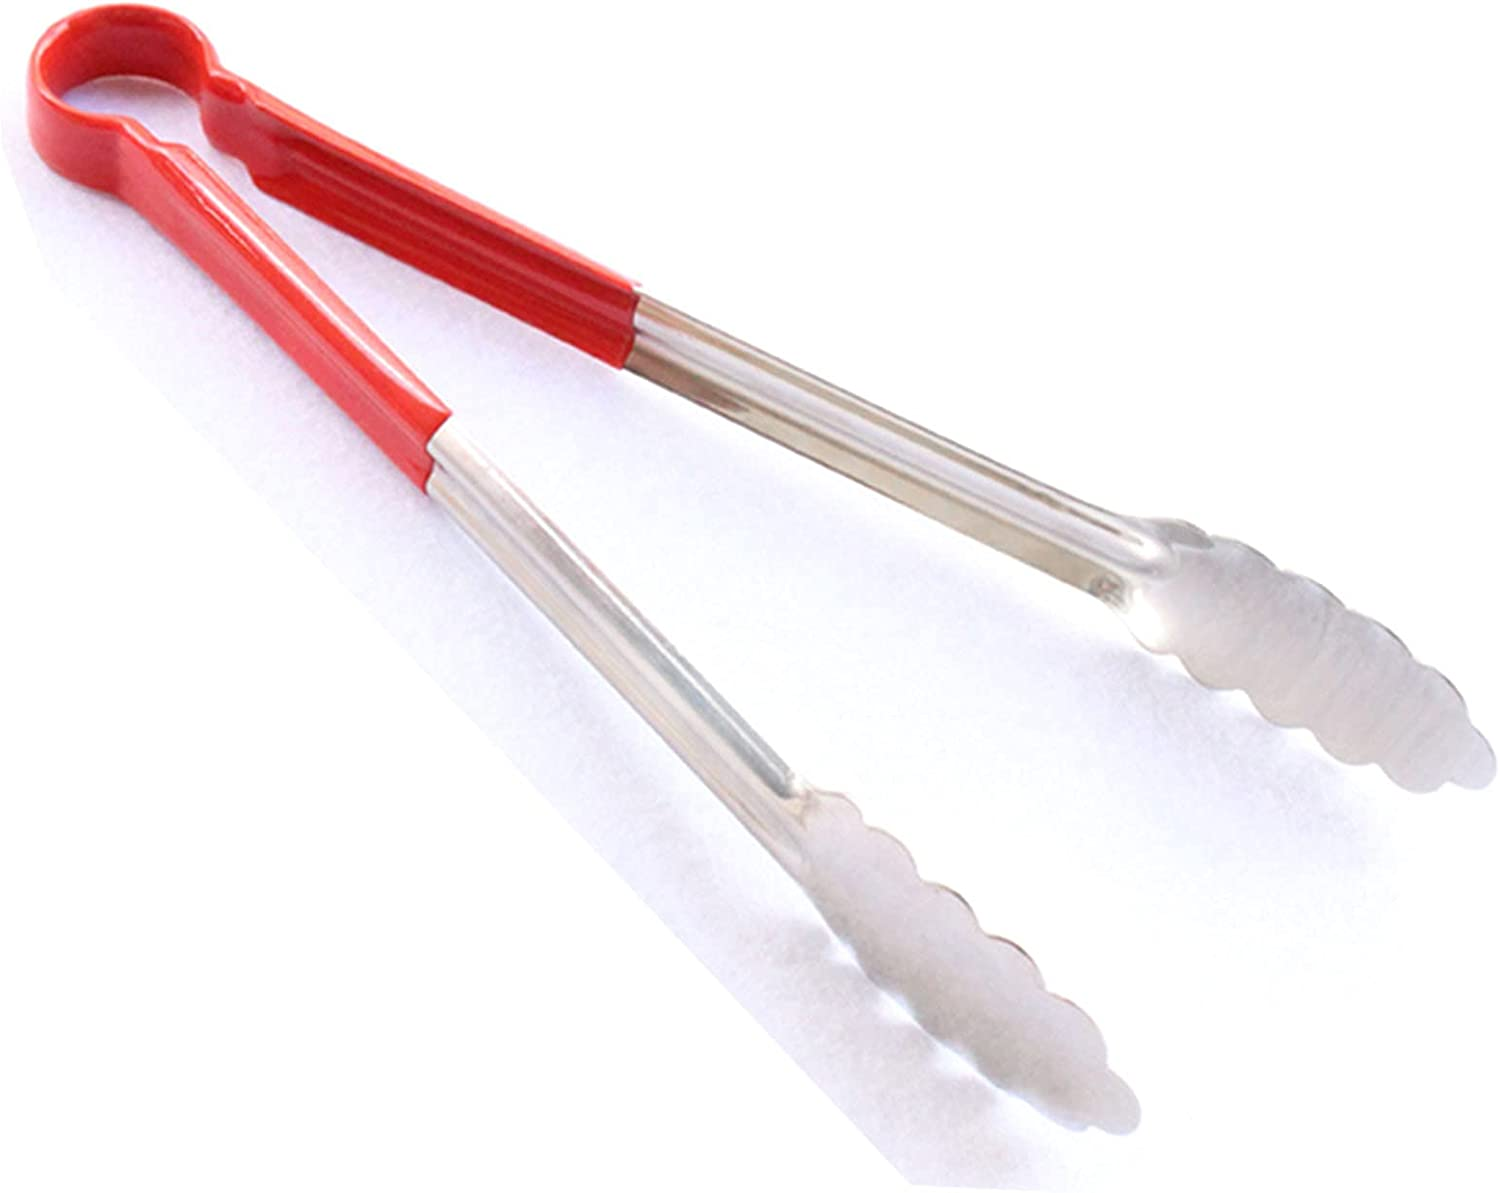 Manufacturer Jacksonville Mall regenerated product Eervff Stainless Steel Sugar Small Ice Tongs